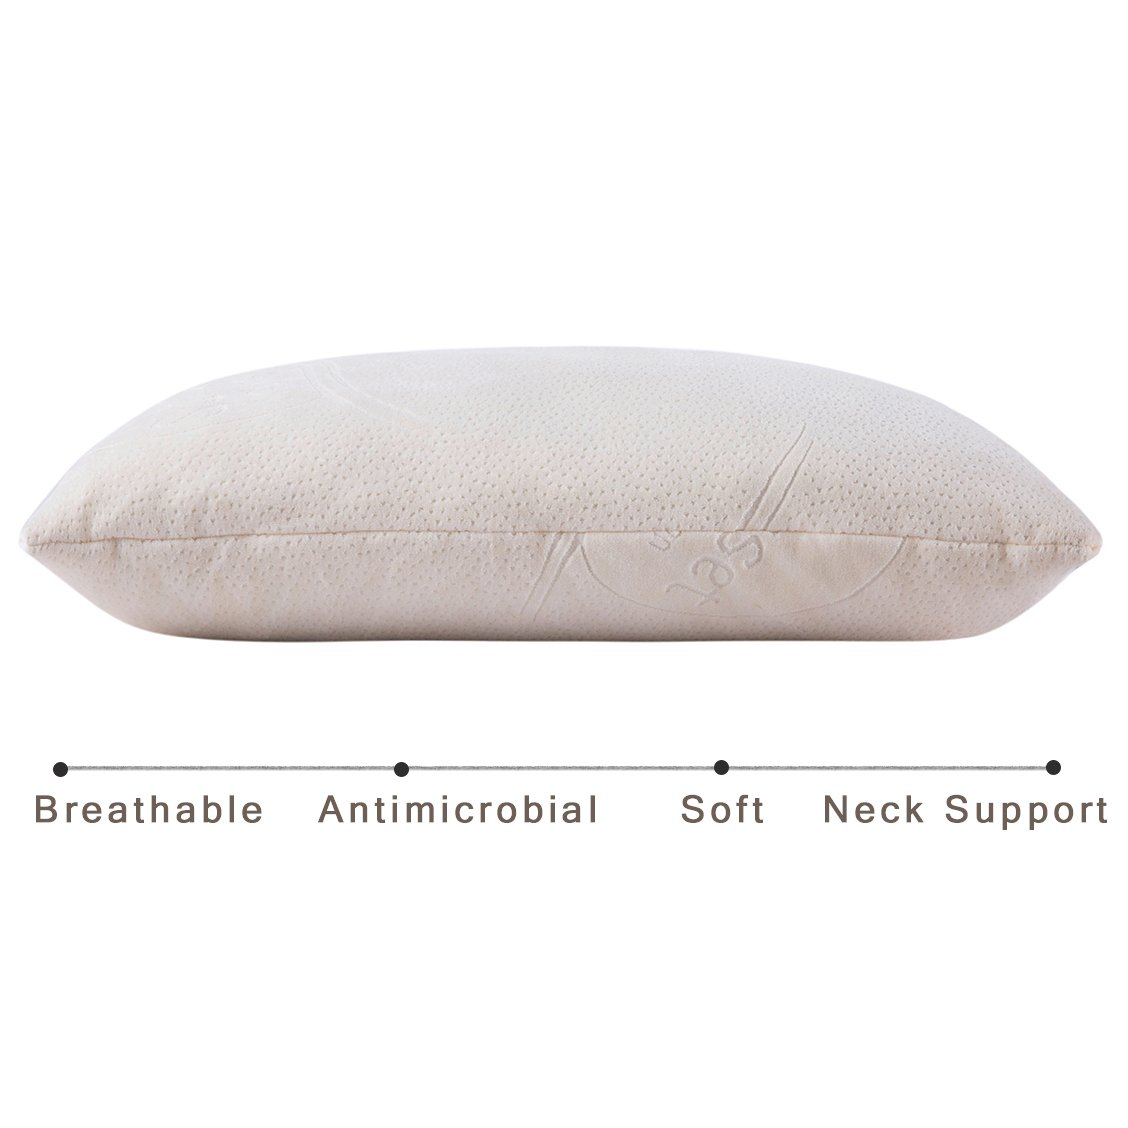 is neck pain for sleepers gallery kupon blanket pillows best sleeper what cushion support cervical side pillow wayzgoosedigitaldesigncom